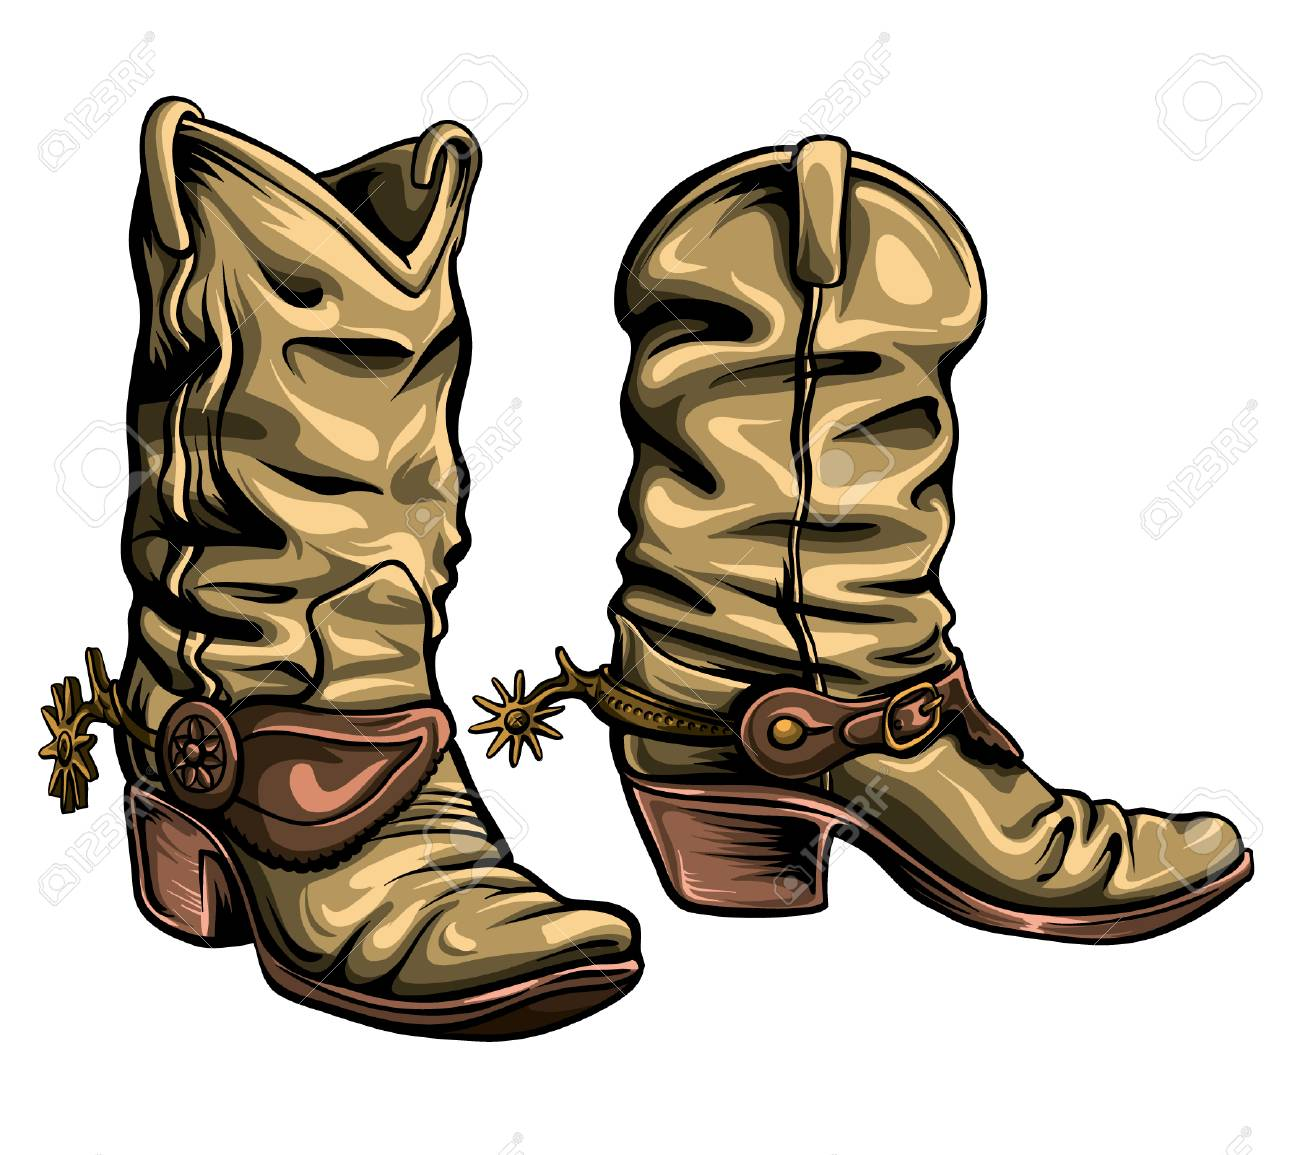 Free Drawn Boots old boot, Download Free Clip Art on Owips.com.